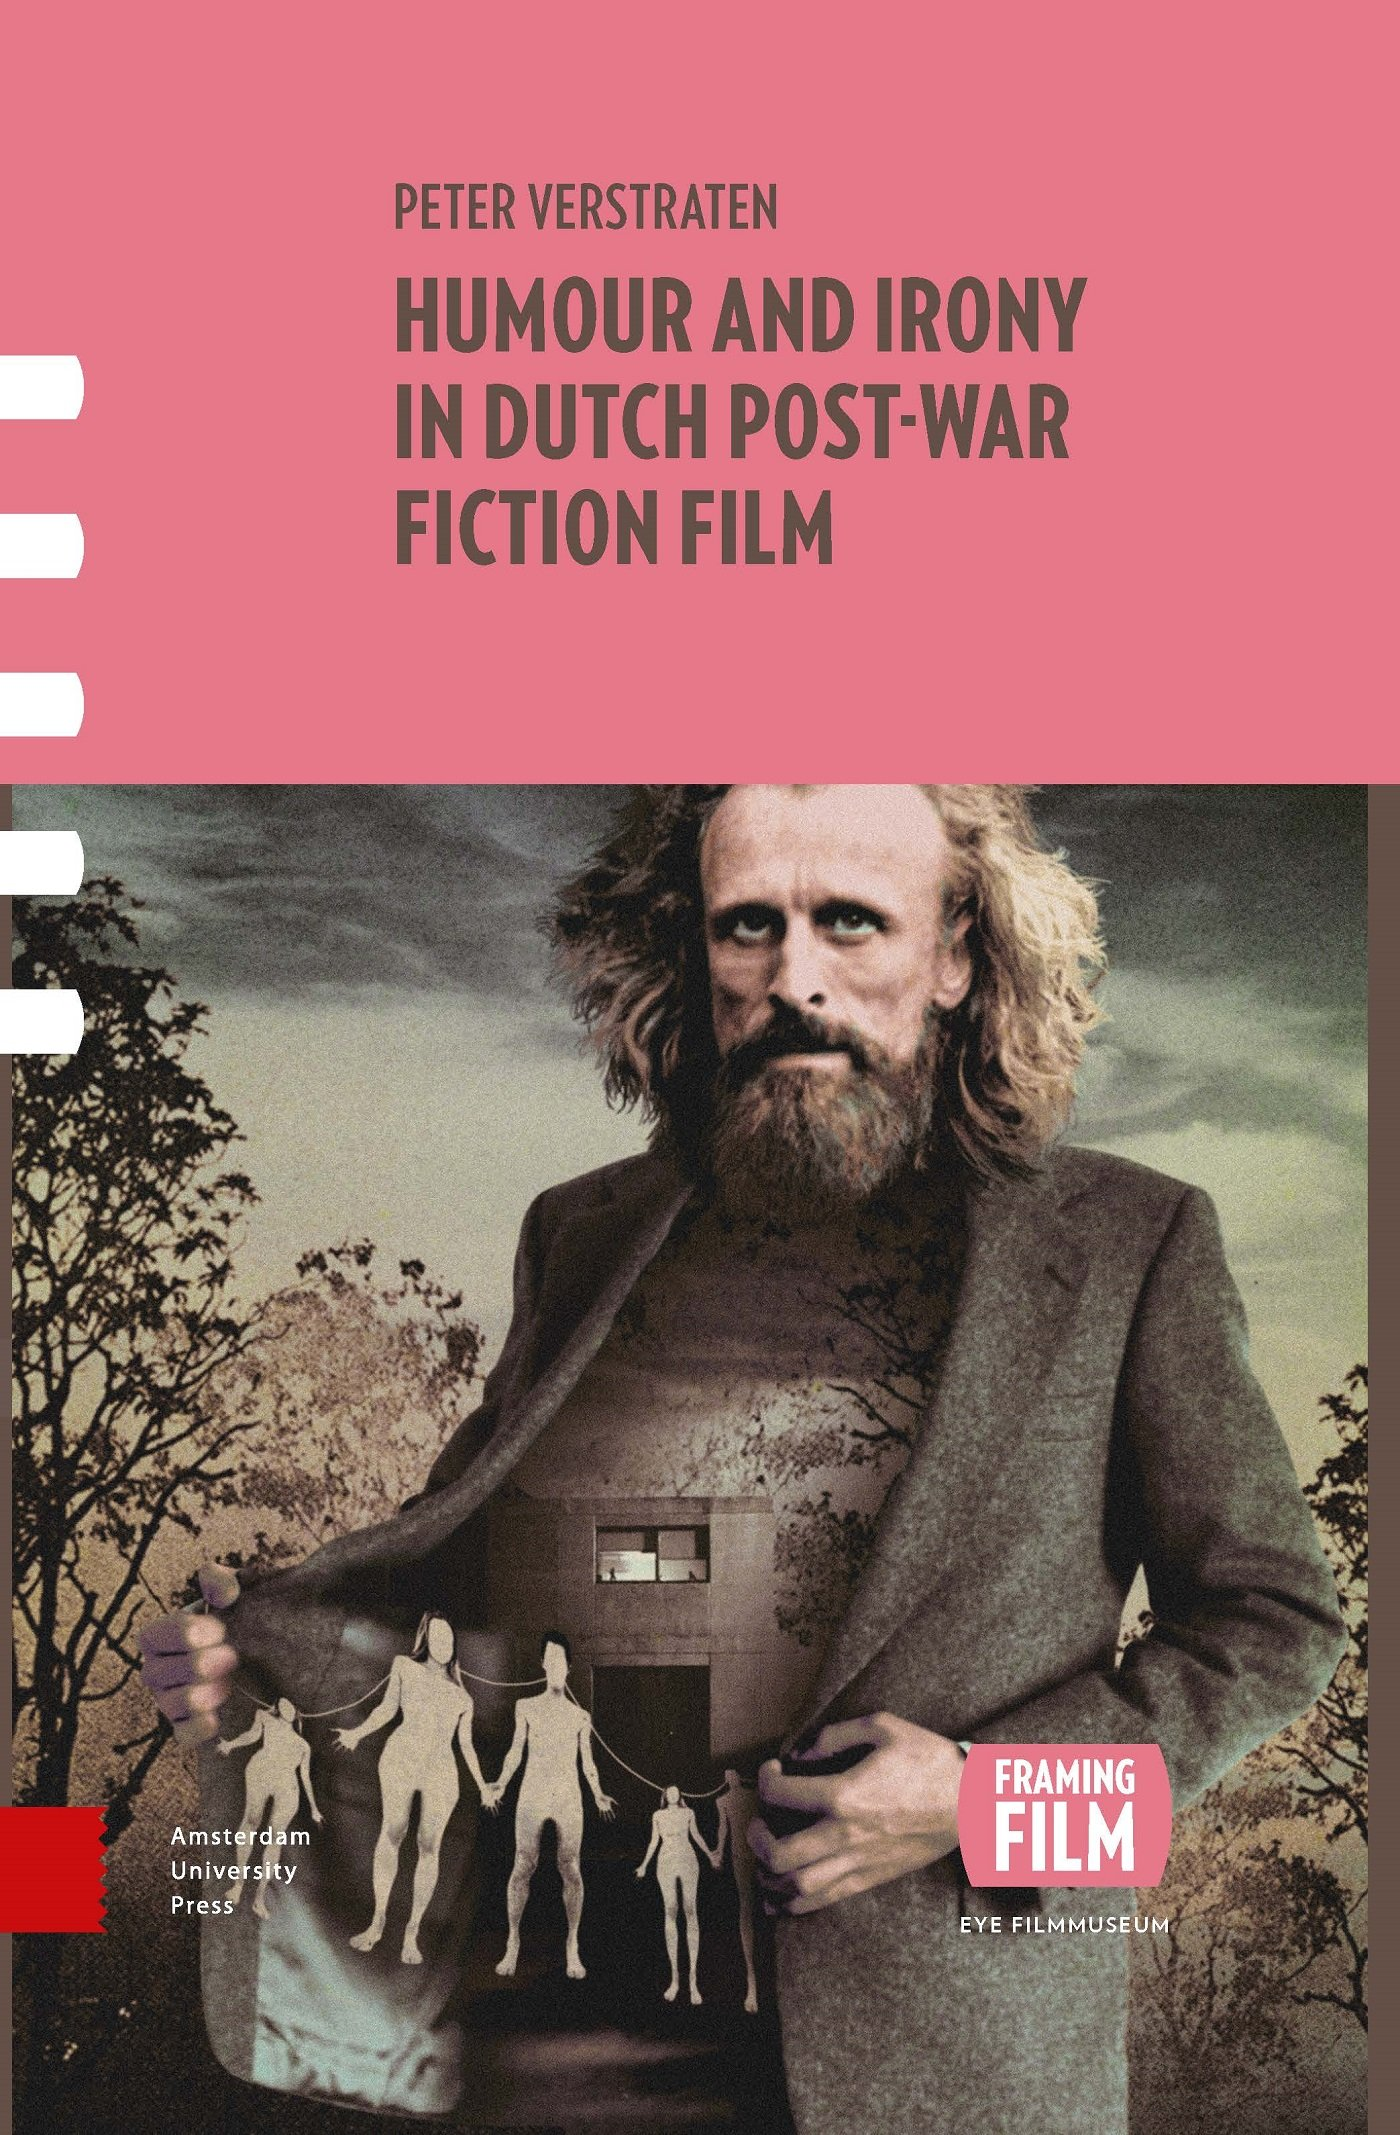 Humour and Irony in Dutch Post-War Fiction Film Framing Film: Amazon ...